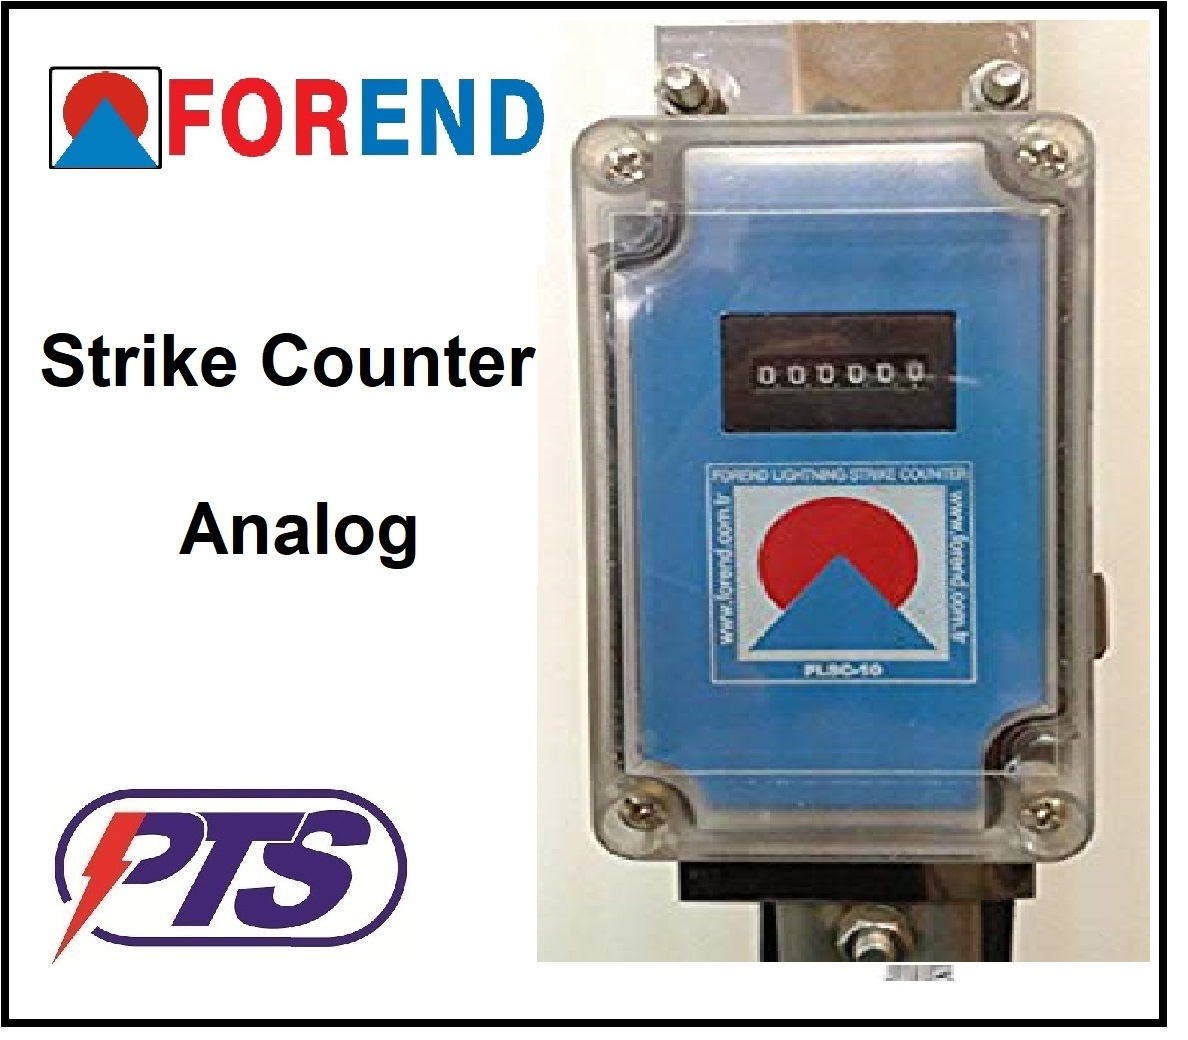 Analog Strike Counter